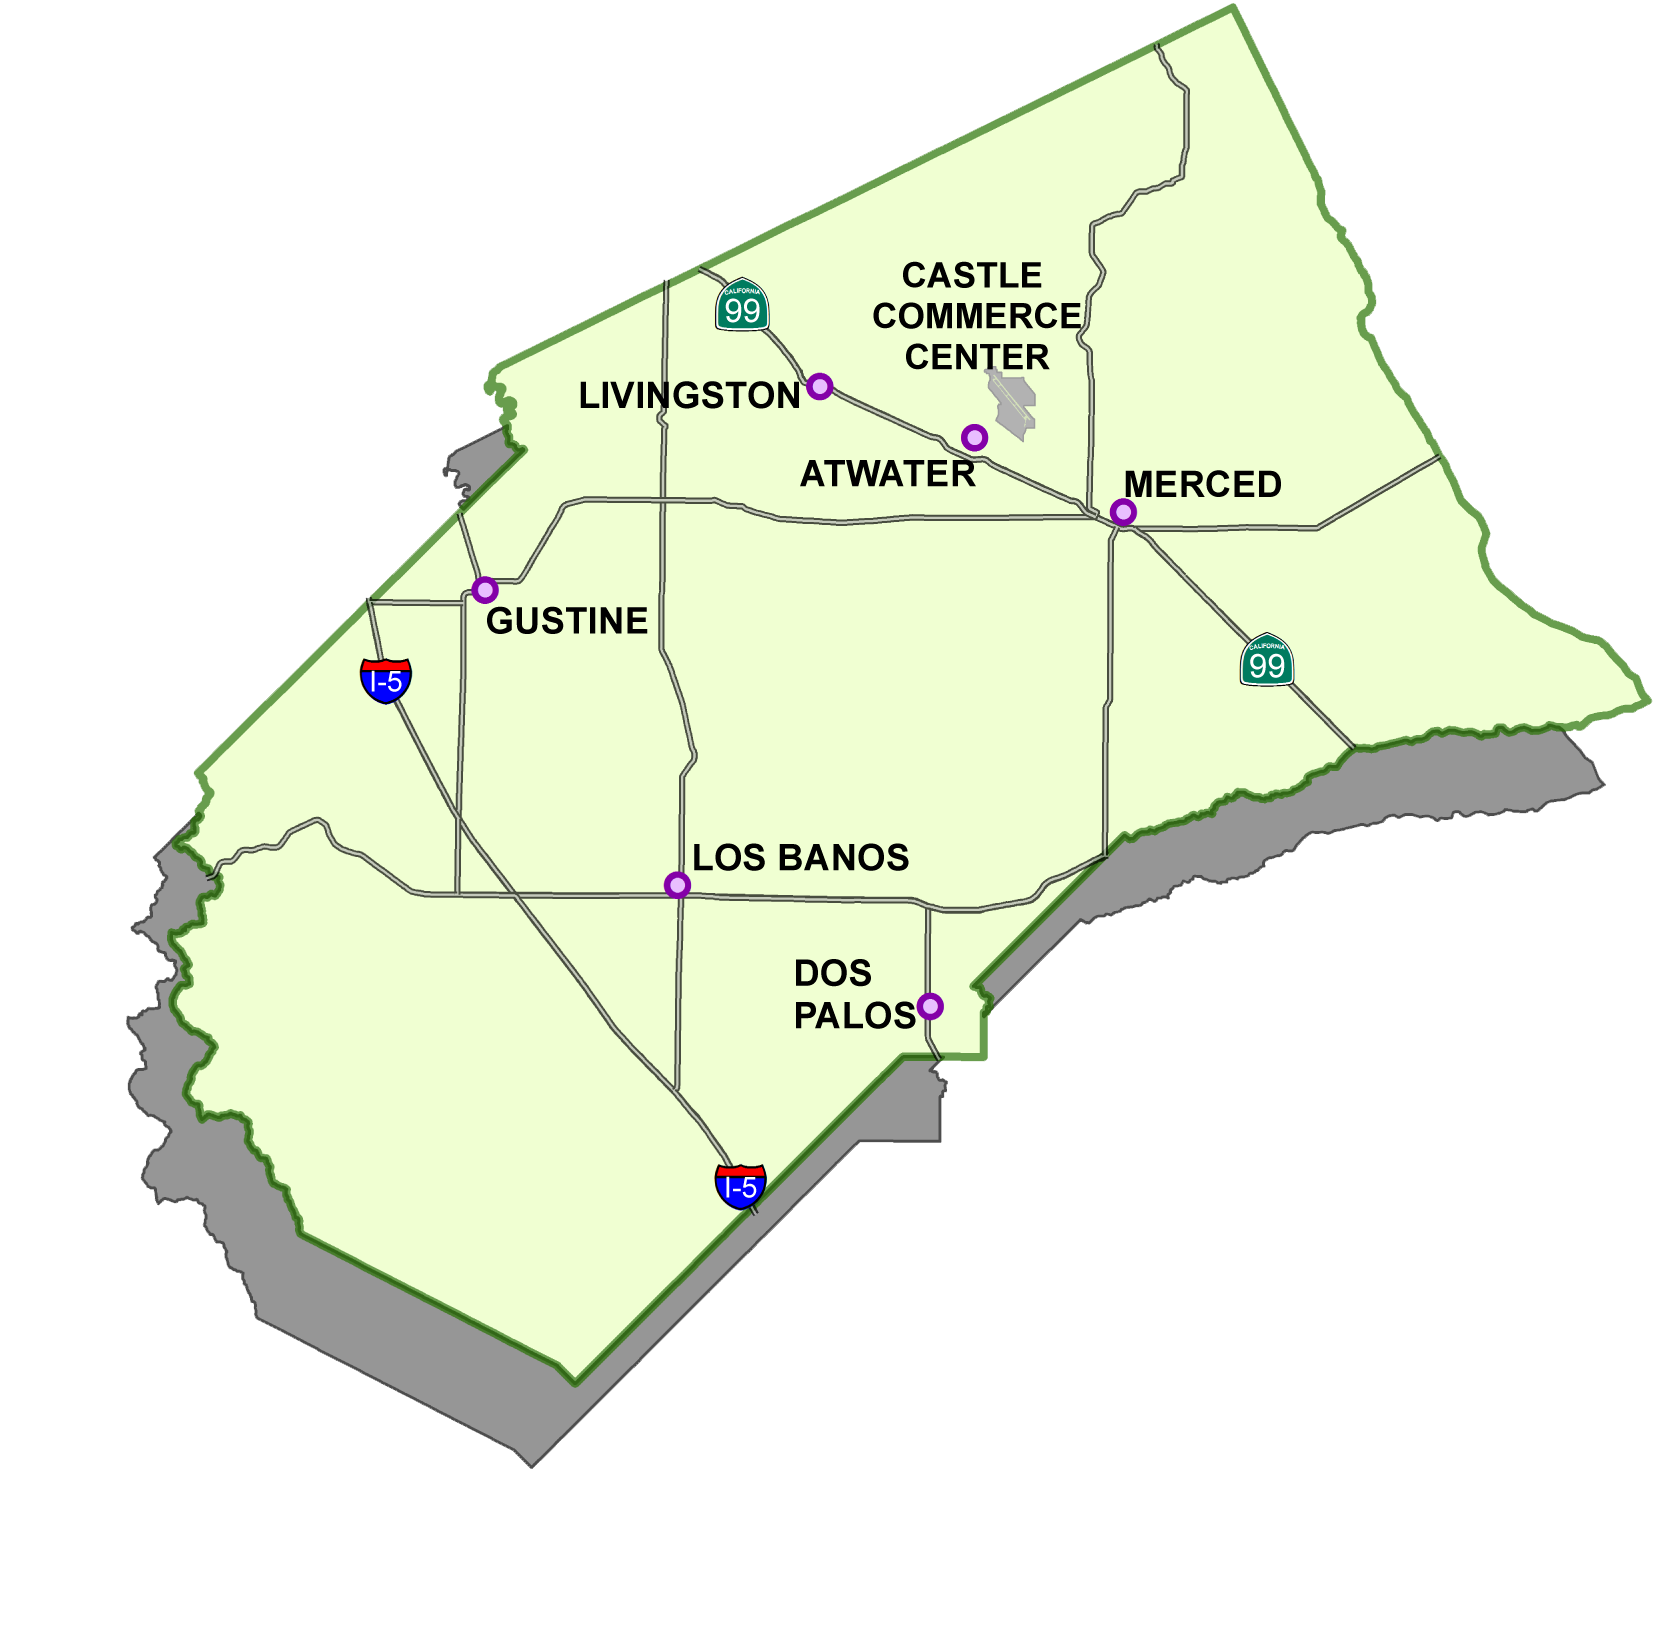 Map of Merced County with cities mapped